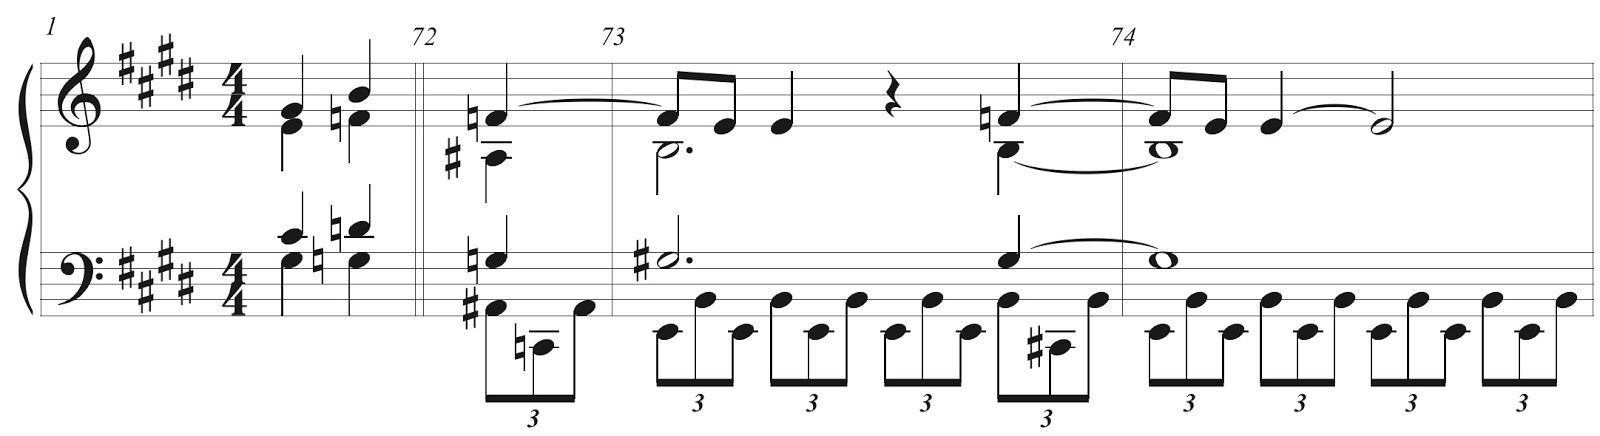 Musicellanea Chords Flip In Pfitzners String Quartet In C Sharp